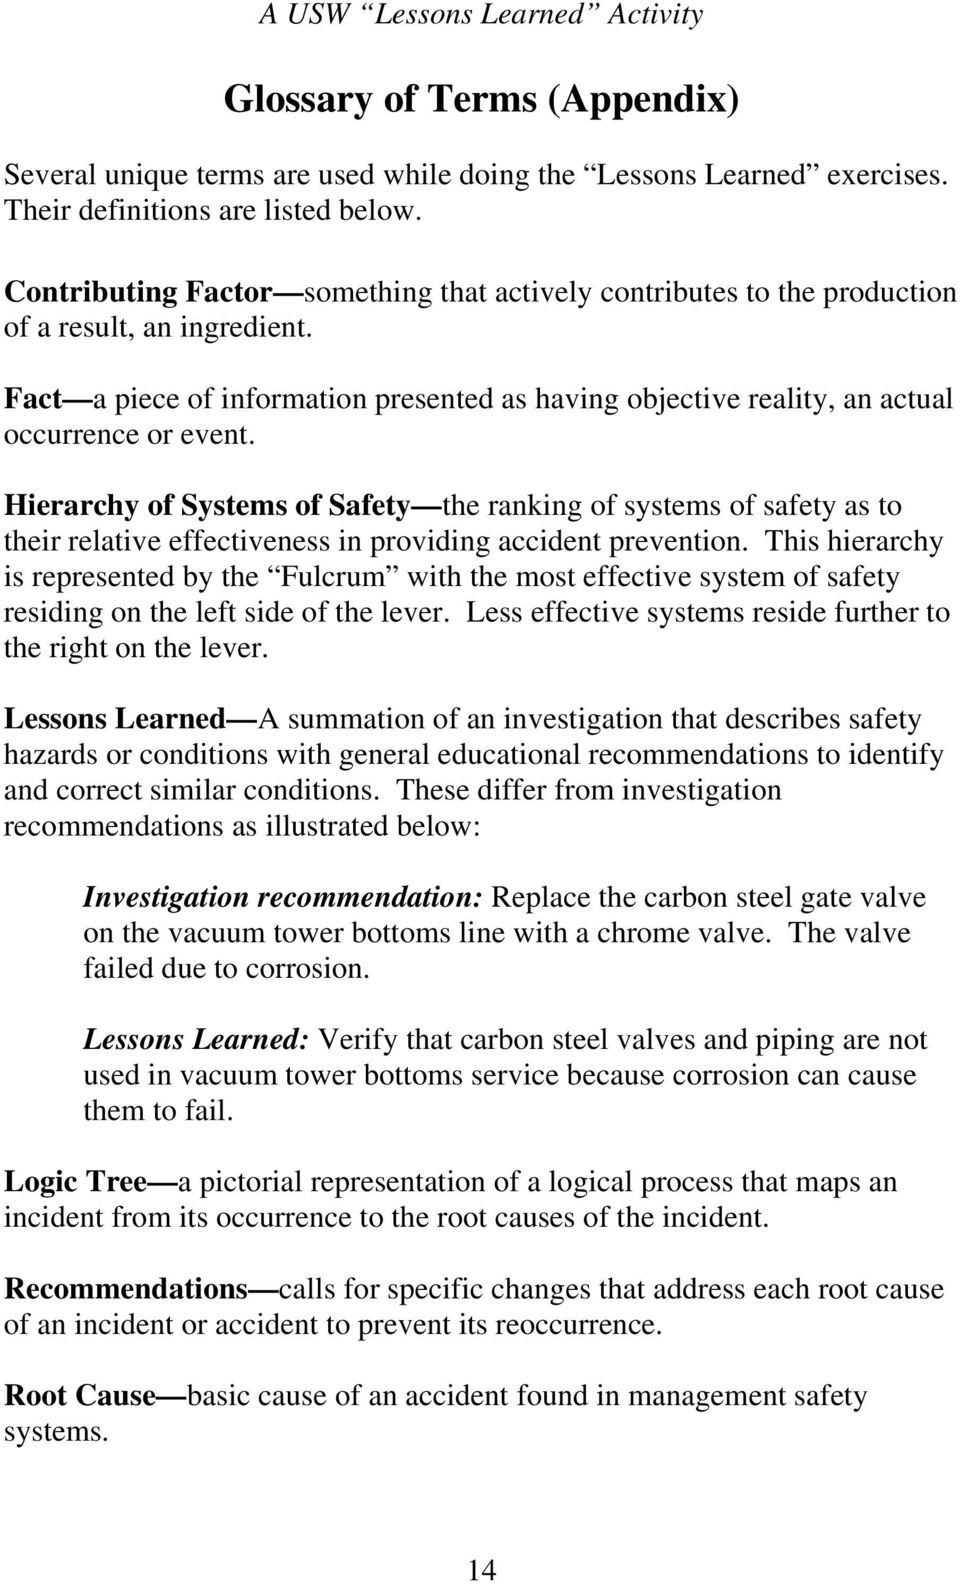 Hierarchy of Systems of Safety the ranking of systems of safety as to their relative effectiveness in providing accident prevention.